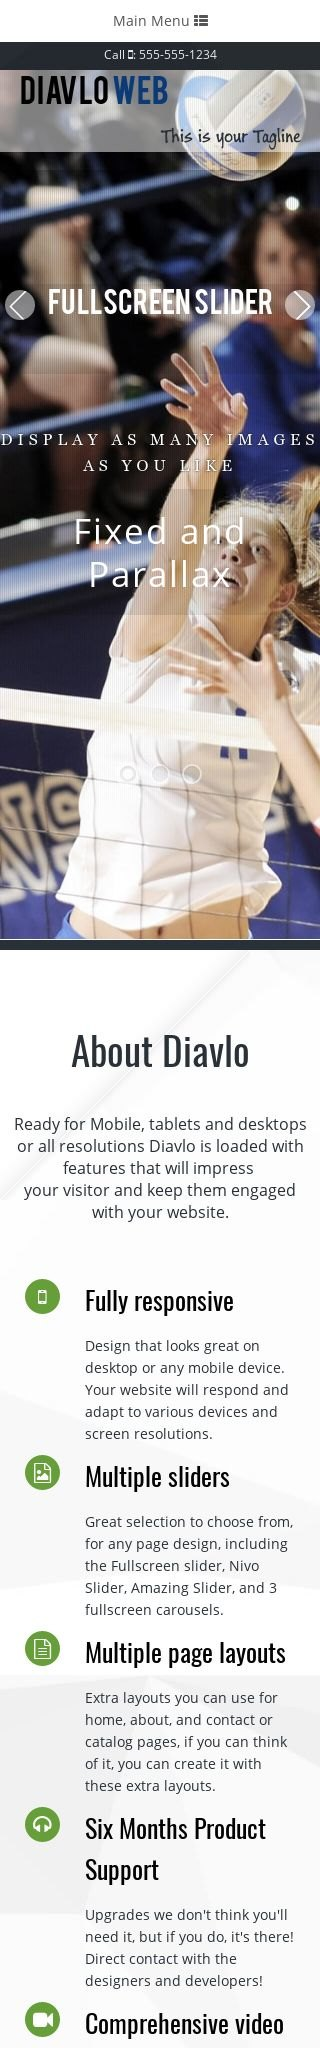 Mobile: Volleyball Web Template